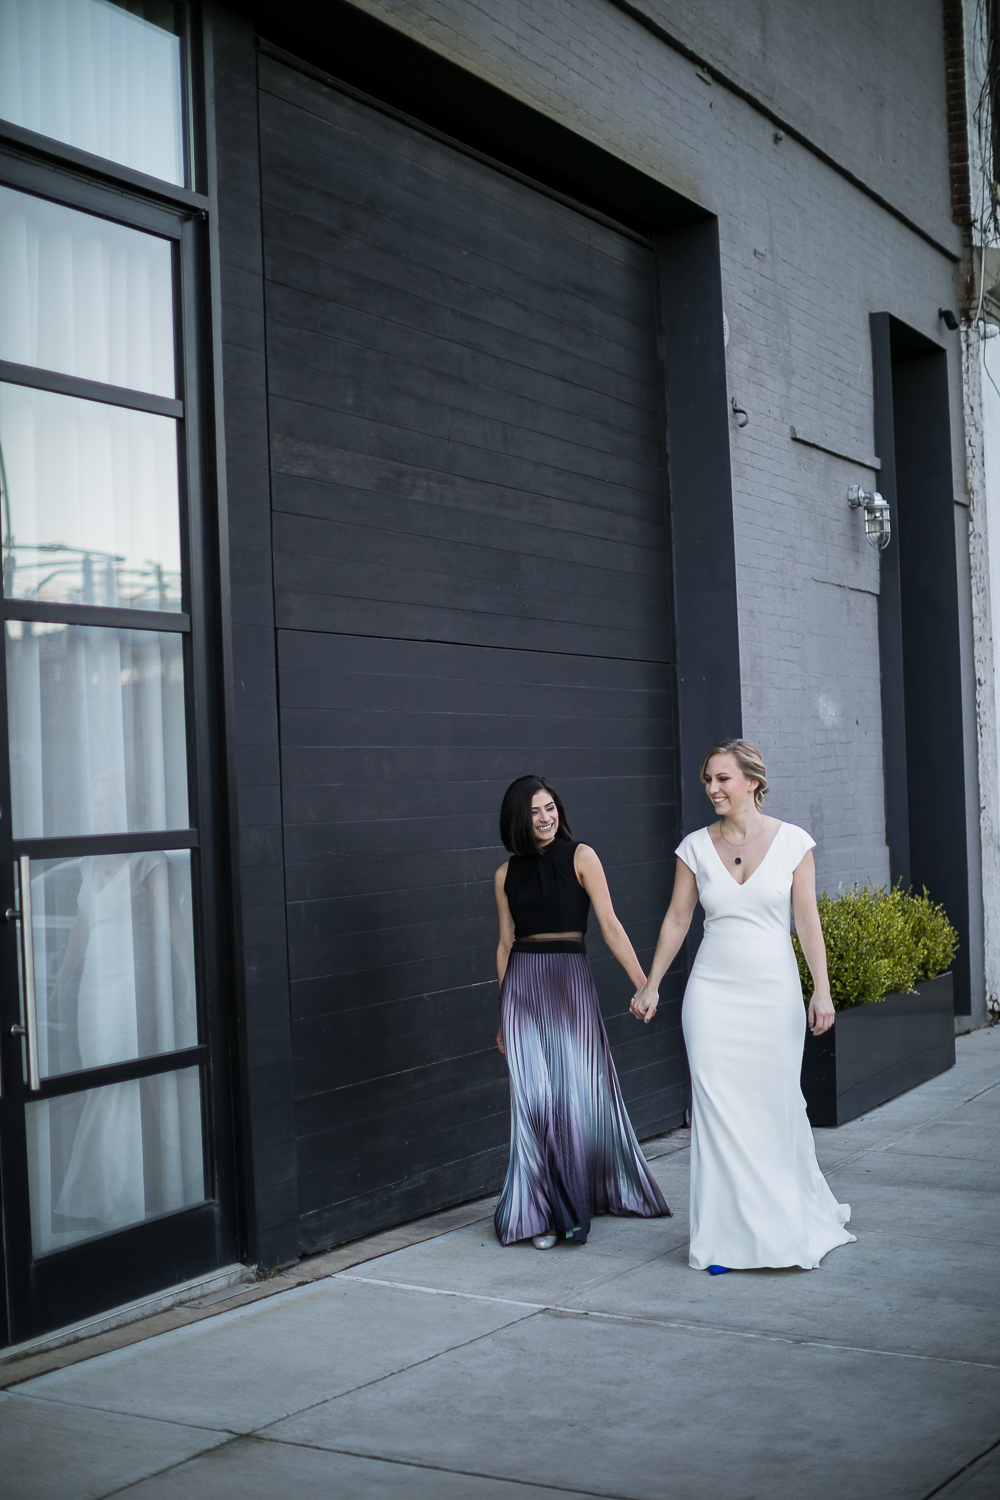 Brides holding hands | 26 Bridge Wedding Photos | Lesbian Brooklyn Wedding | Kristin and Marisa's Wedding